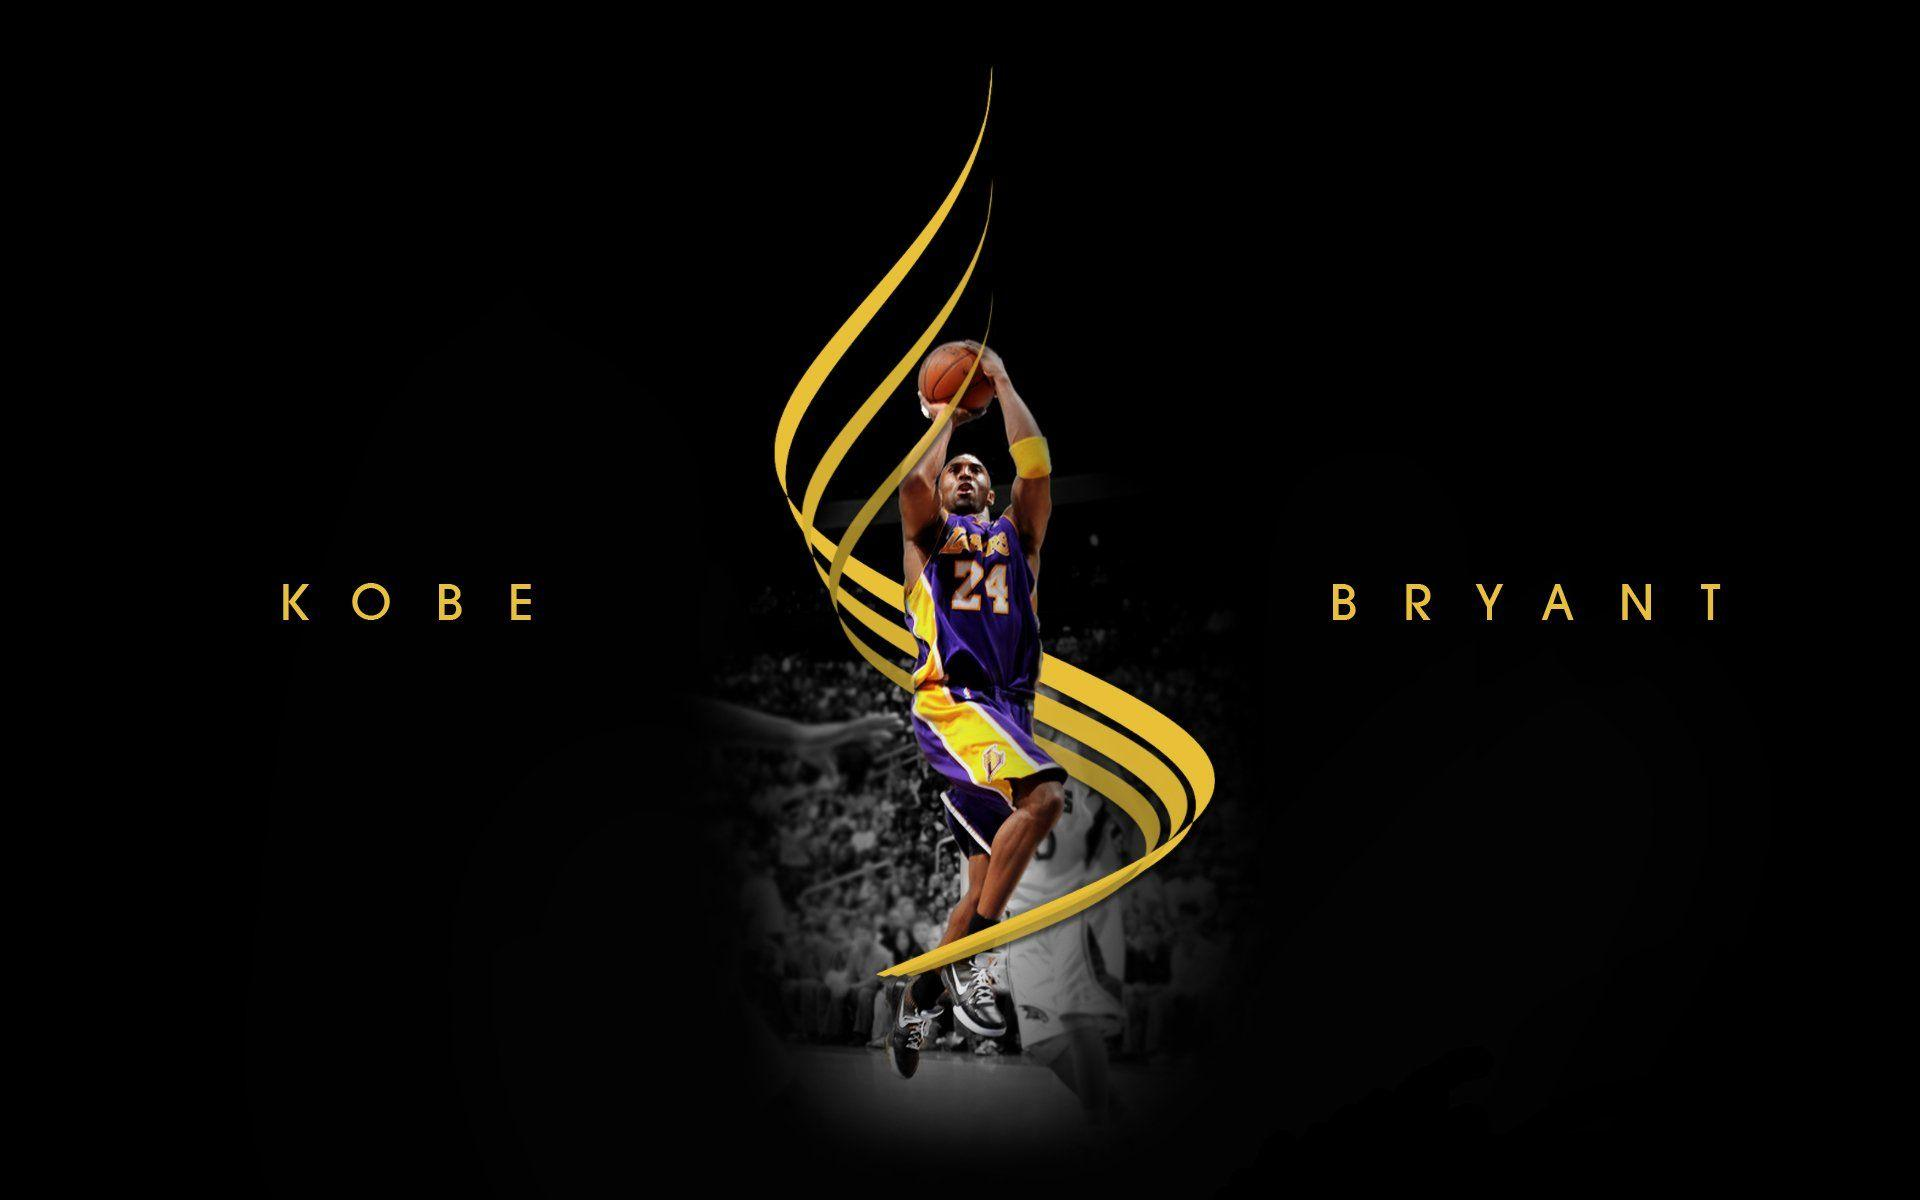 Image For > Kobe Bryant Wallpapers 2013 Nike